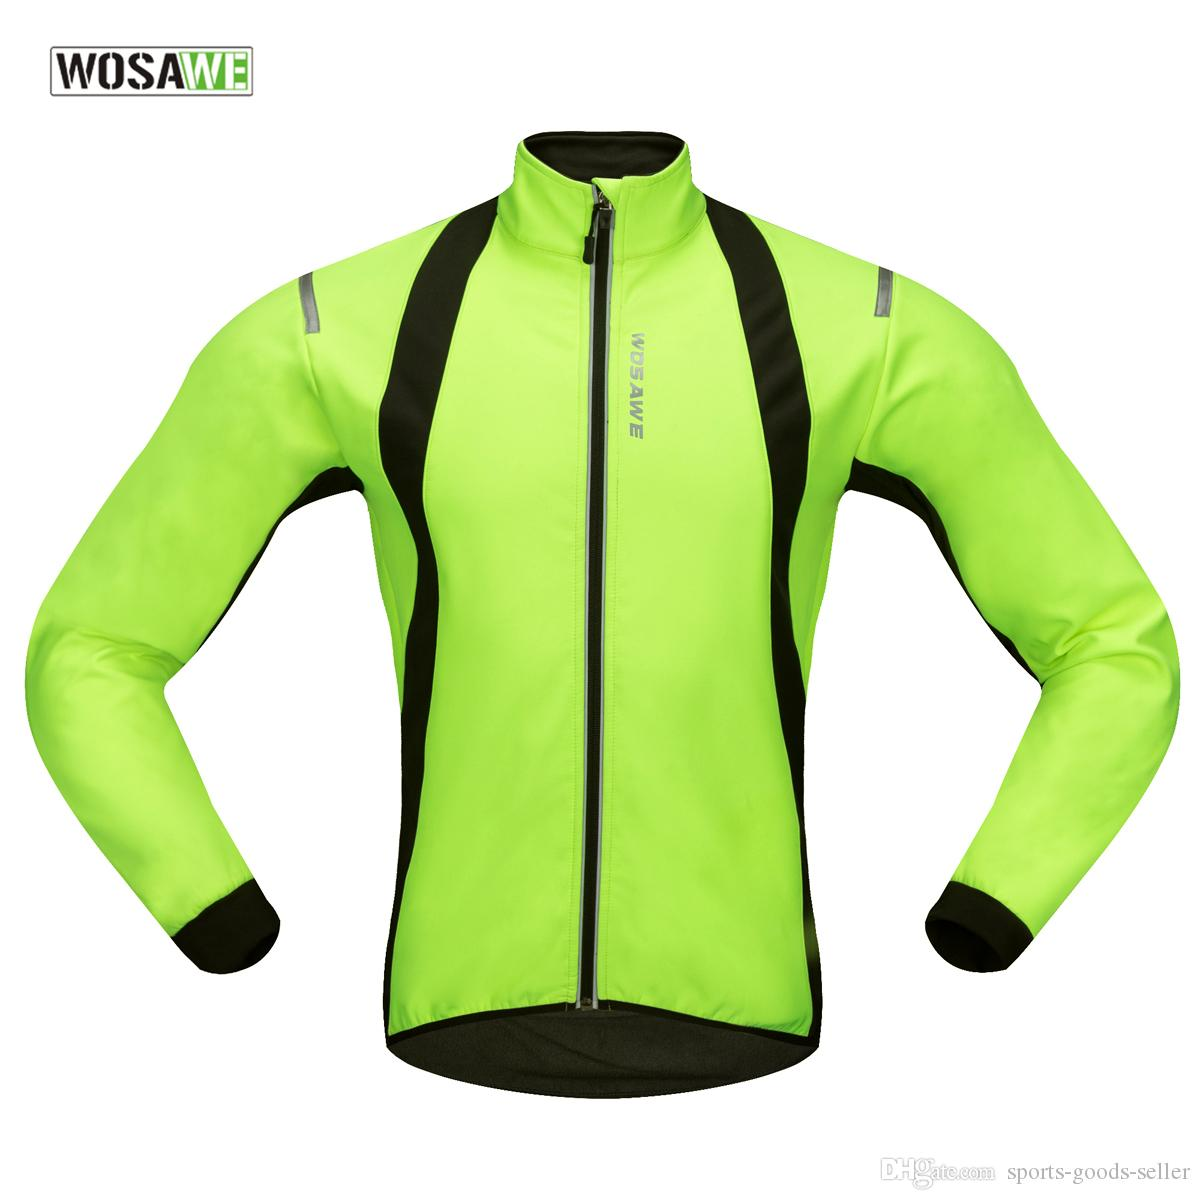 WOSAWE Blast Soft Shell Thermal Fleece Long-sleeves Cycling Jersey ... 65710f042